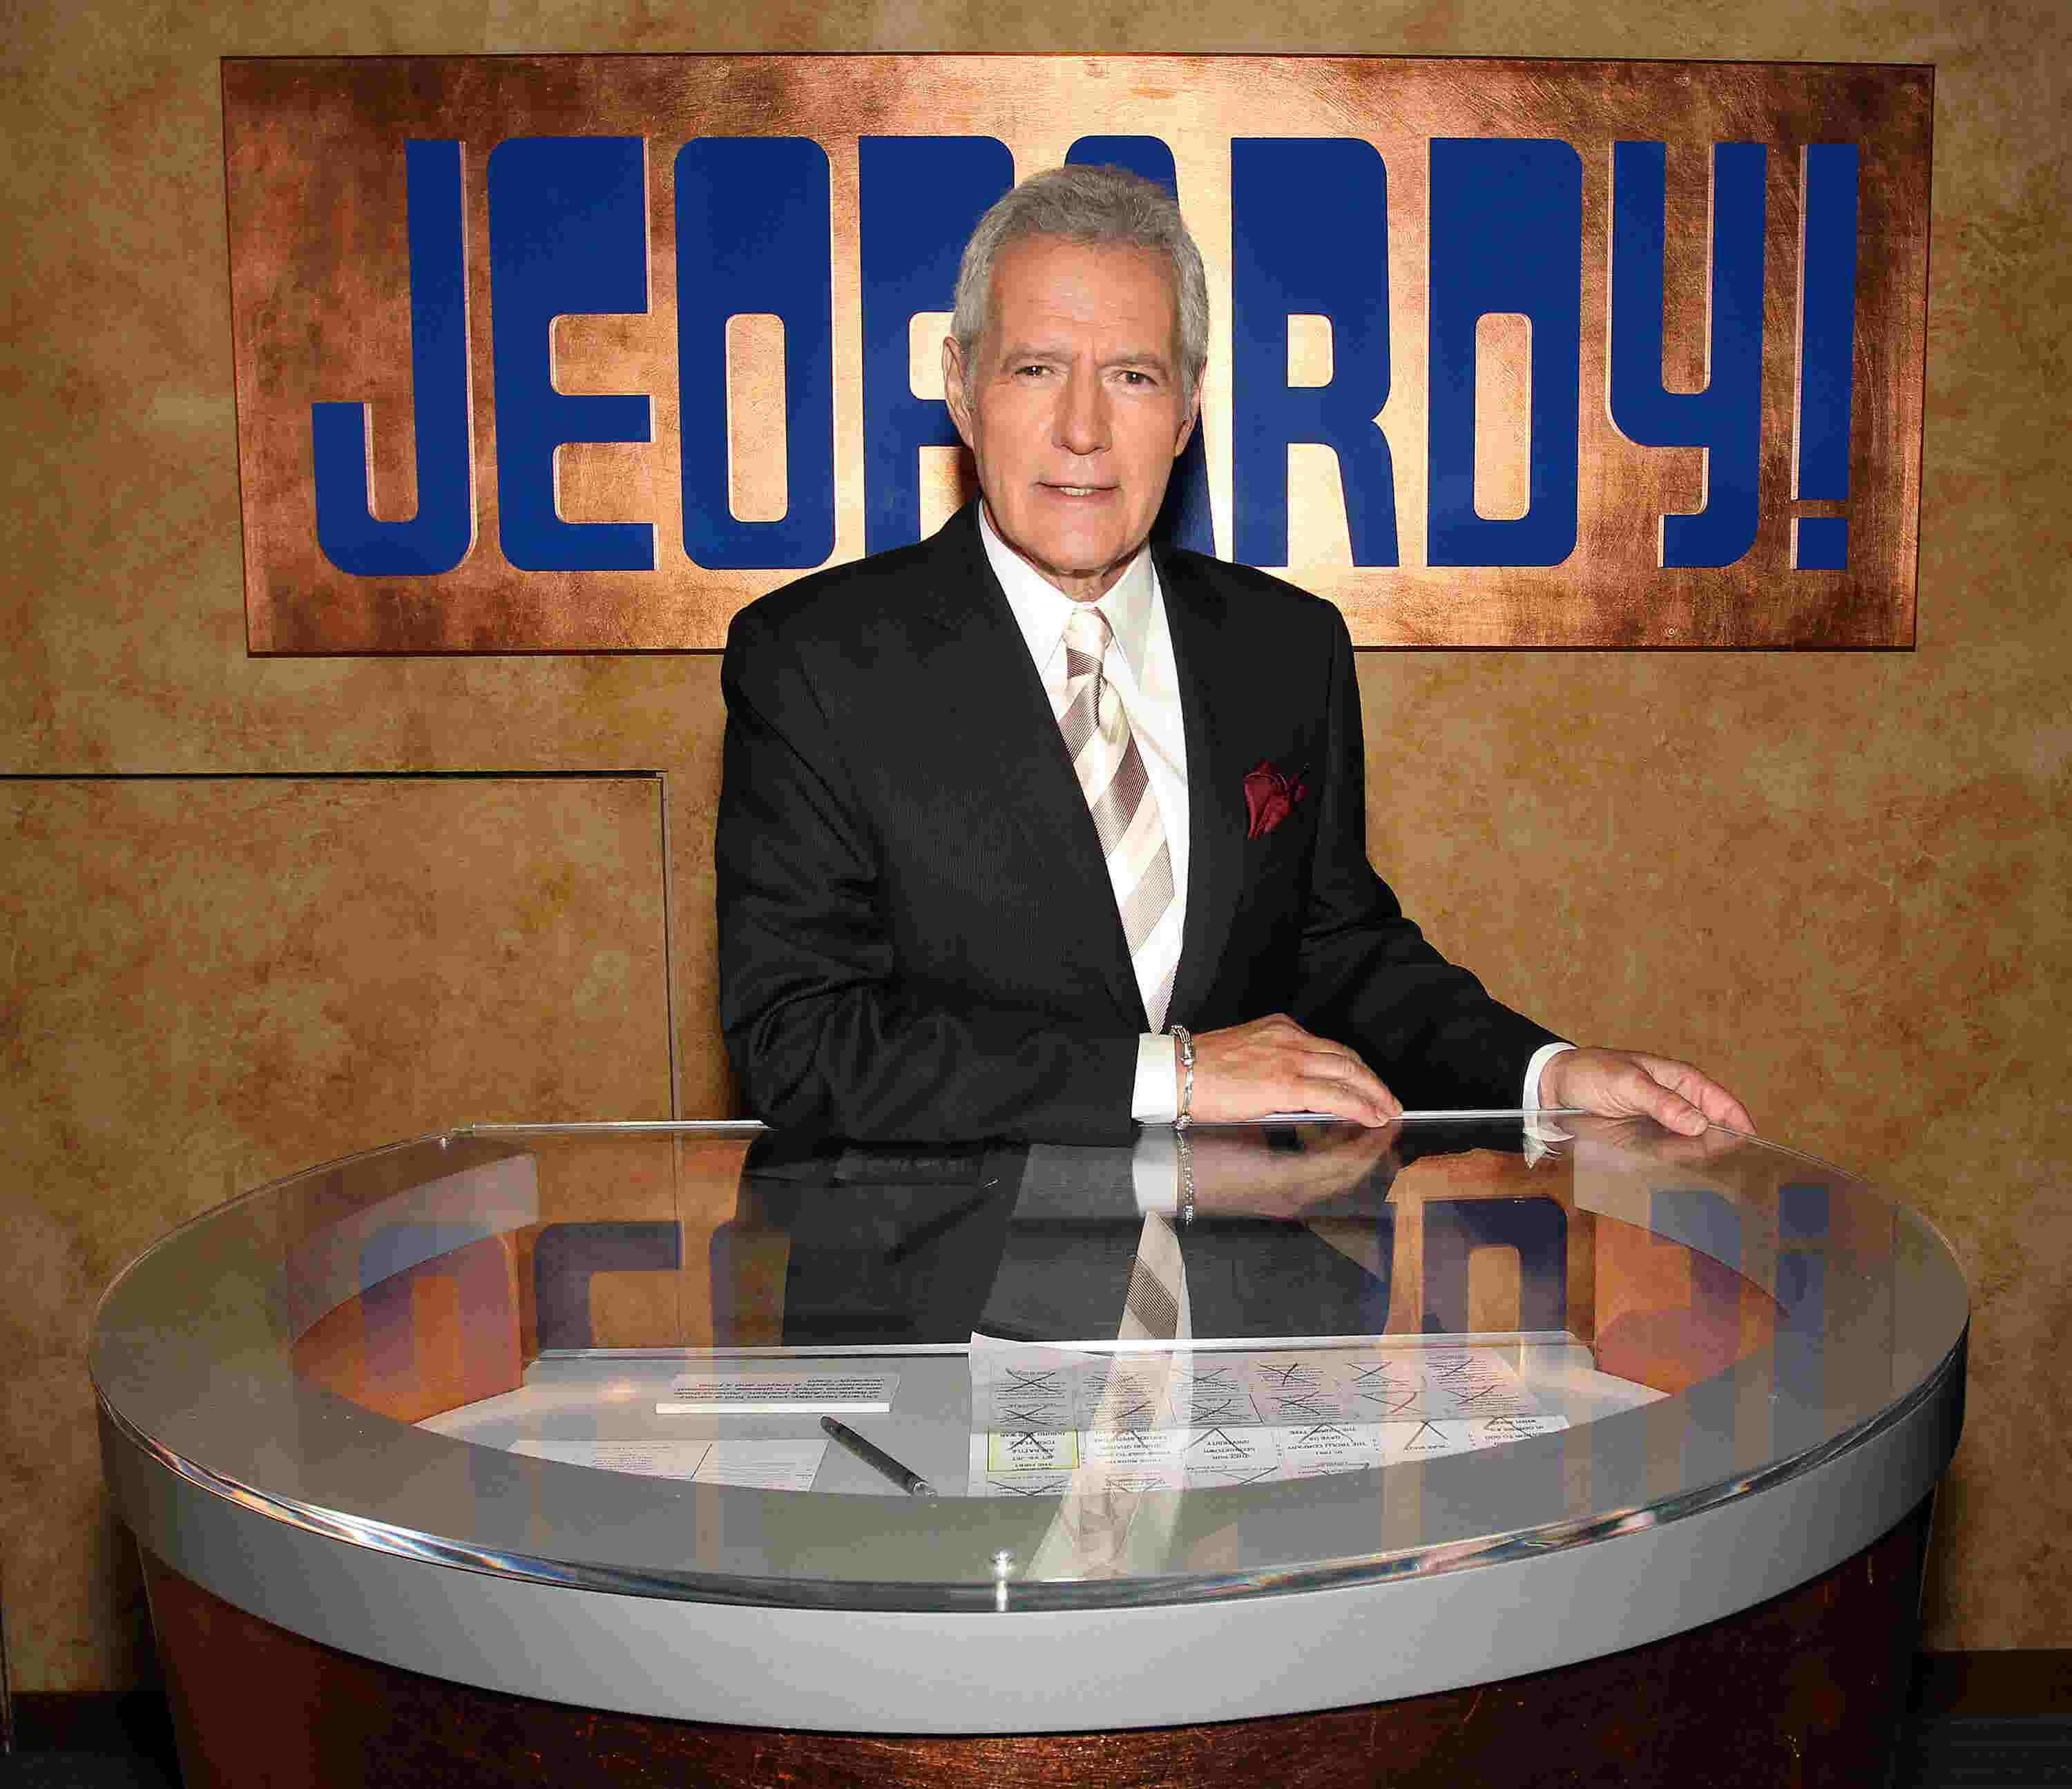 'Jeopardy!' host Alex Trebek diagnosed with stage 4 pancreatic cancer: 'I plan to beat' it